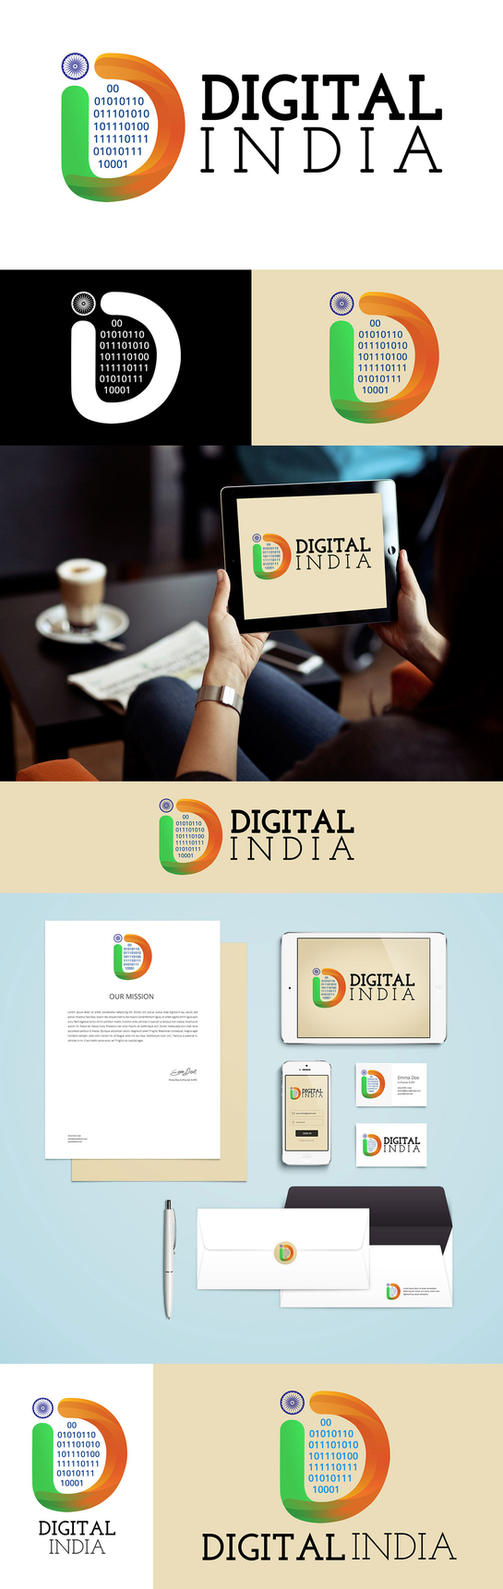 Digital India Logo Concept #2 By Prince Pal by princepal